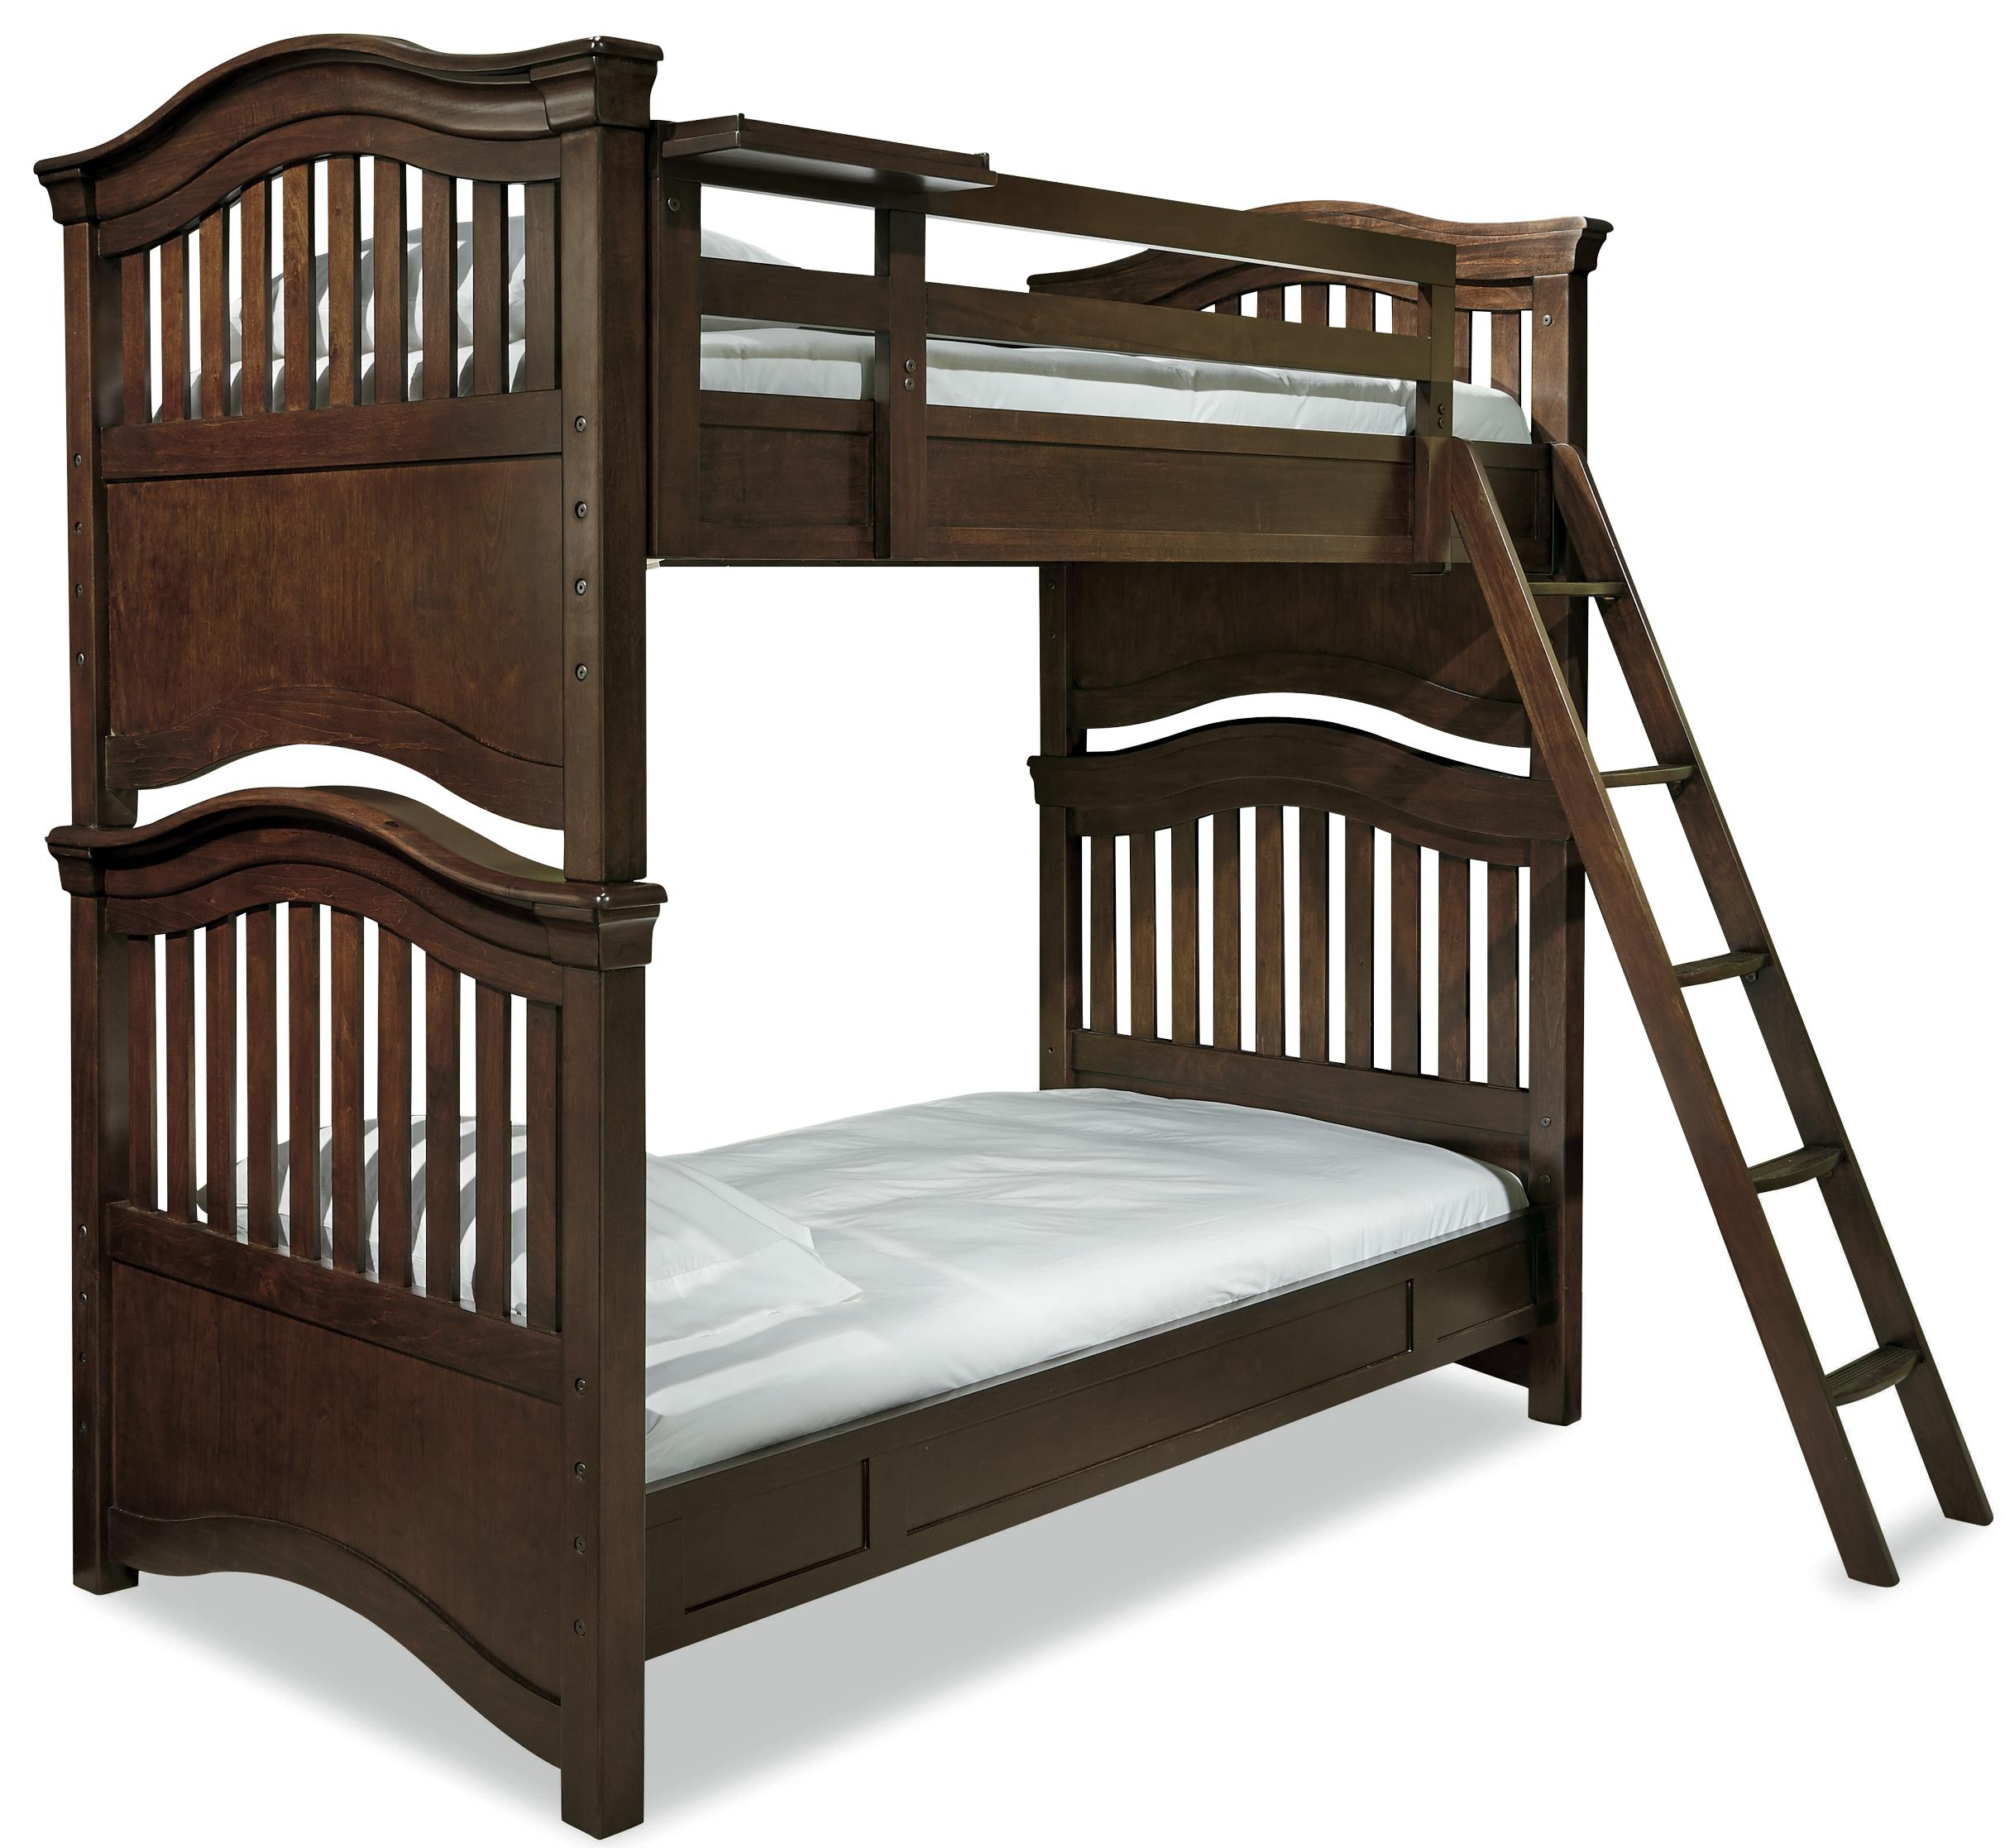 Smartstuff Classics 4.0 Twin Bunk Bed - Item Number: 1312530